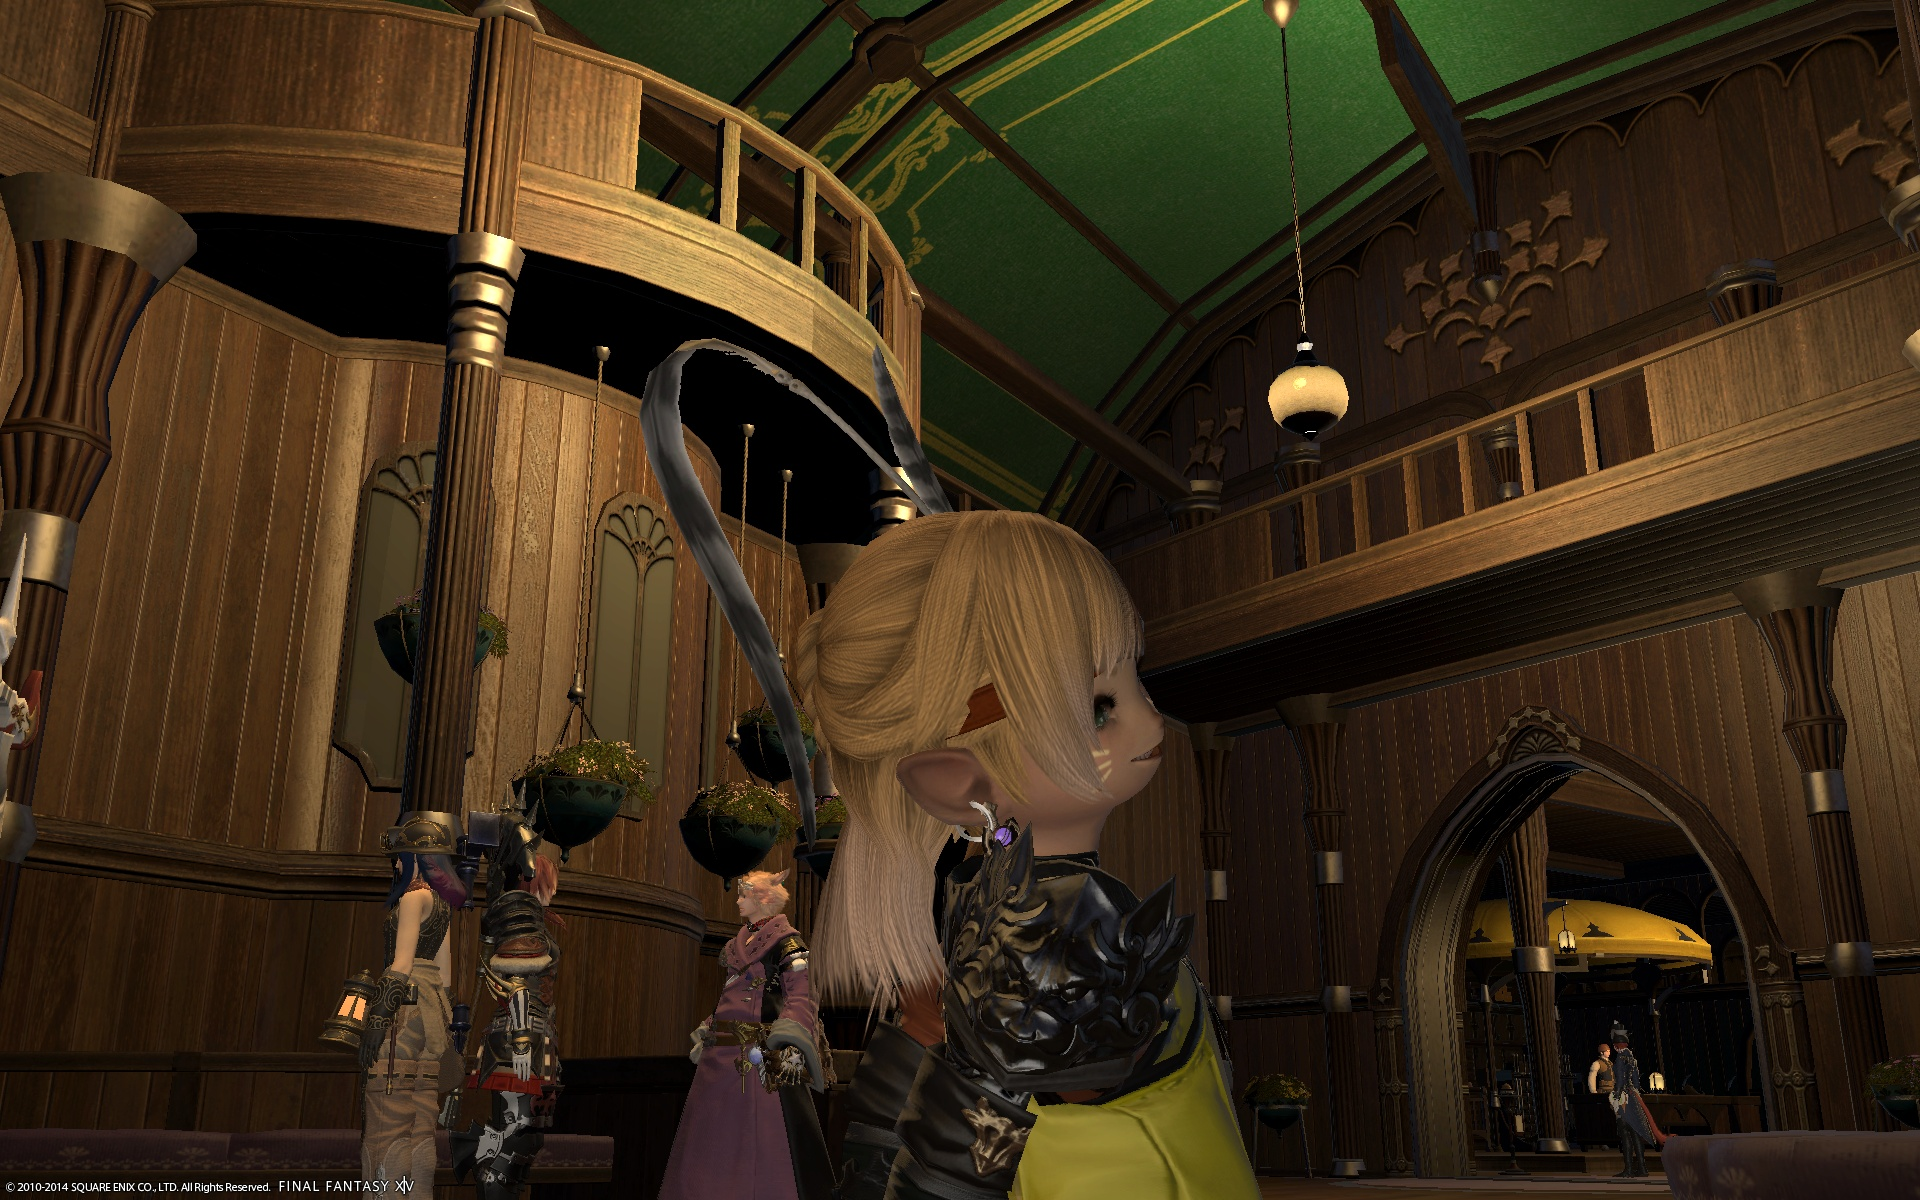 airenn ffxiv know ears really this used shitpost with just like deal forum over month entire grind inb4 lala thread picture cute lalafell coming that fate posting soon